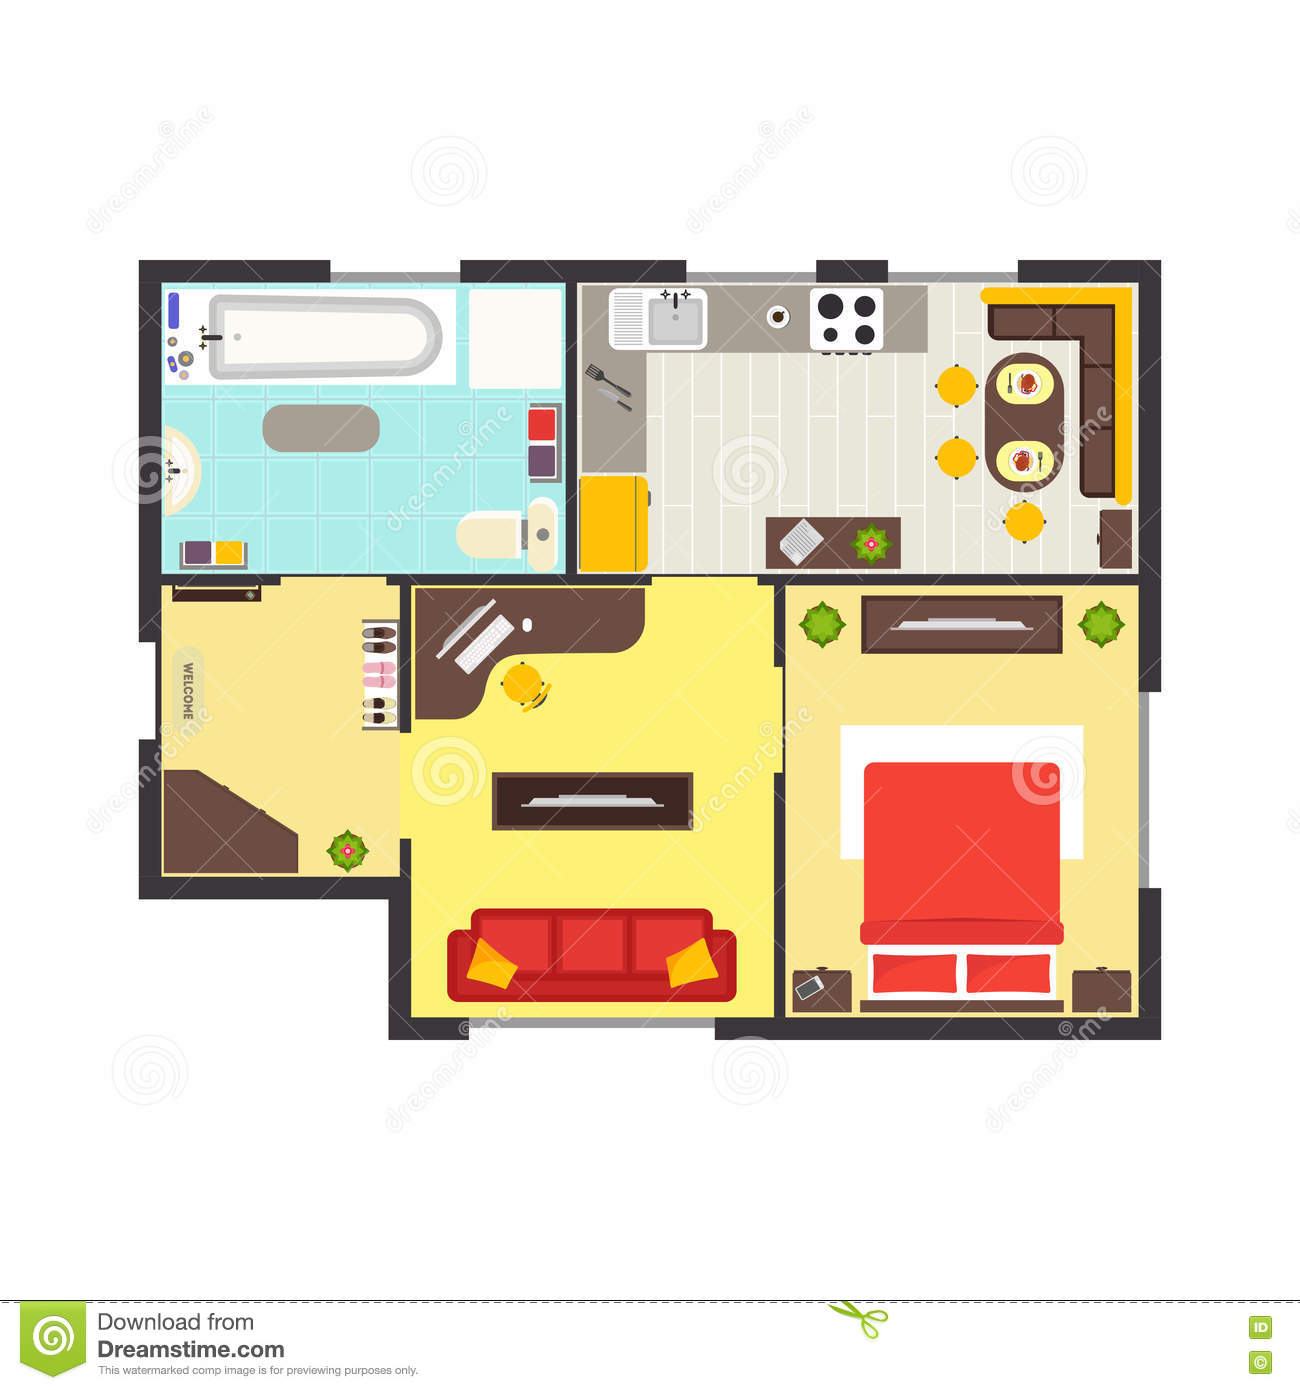 Best Site To Find An Apartment: Apartment Floor Plan With Furniture Top View. Vector Stock